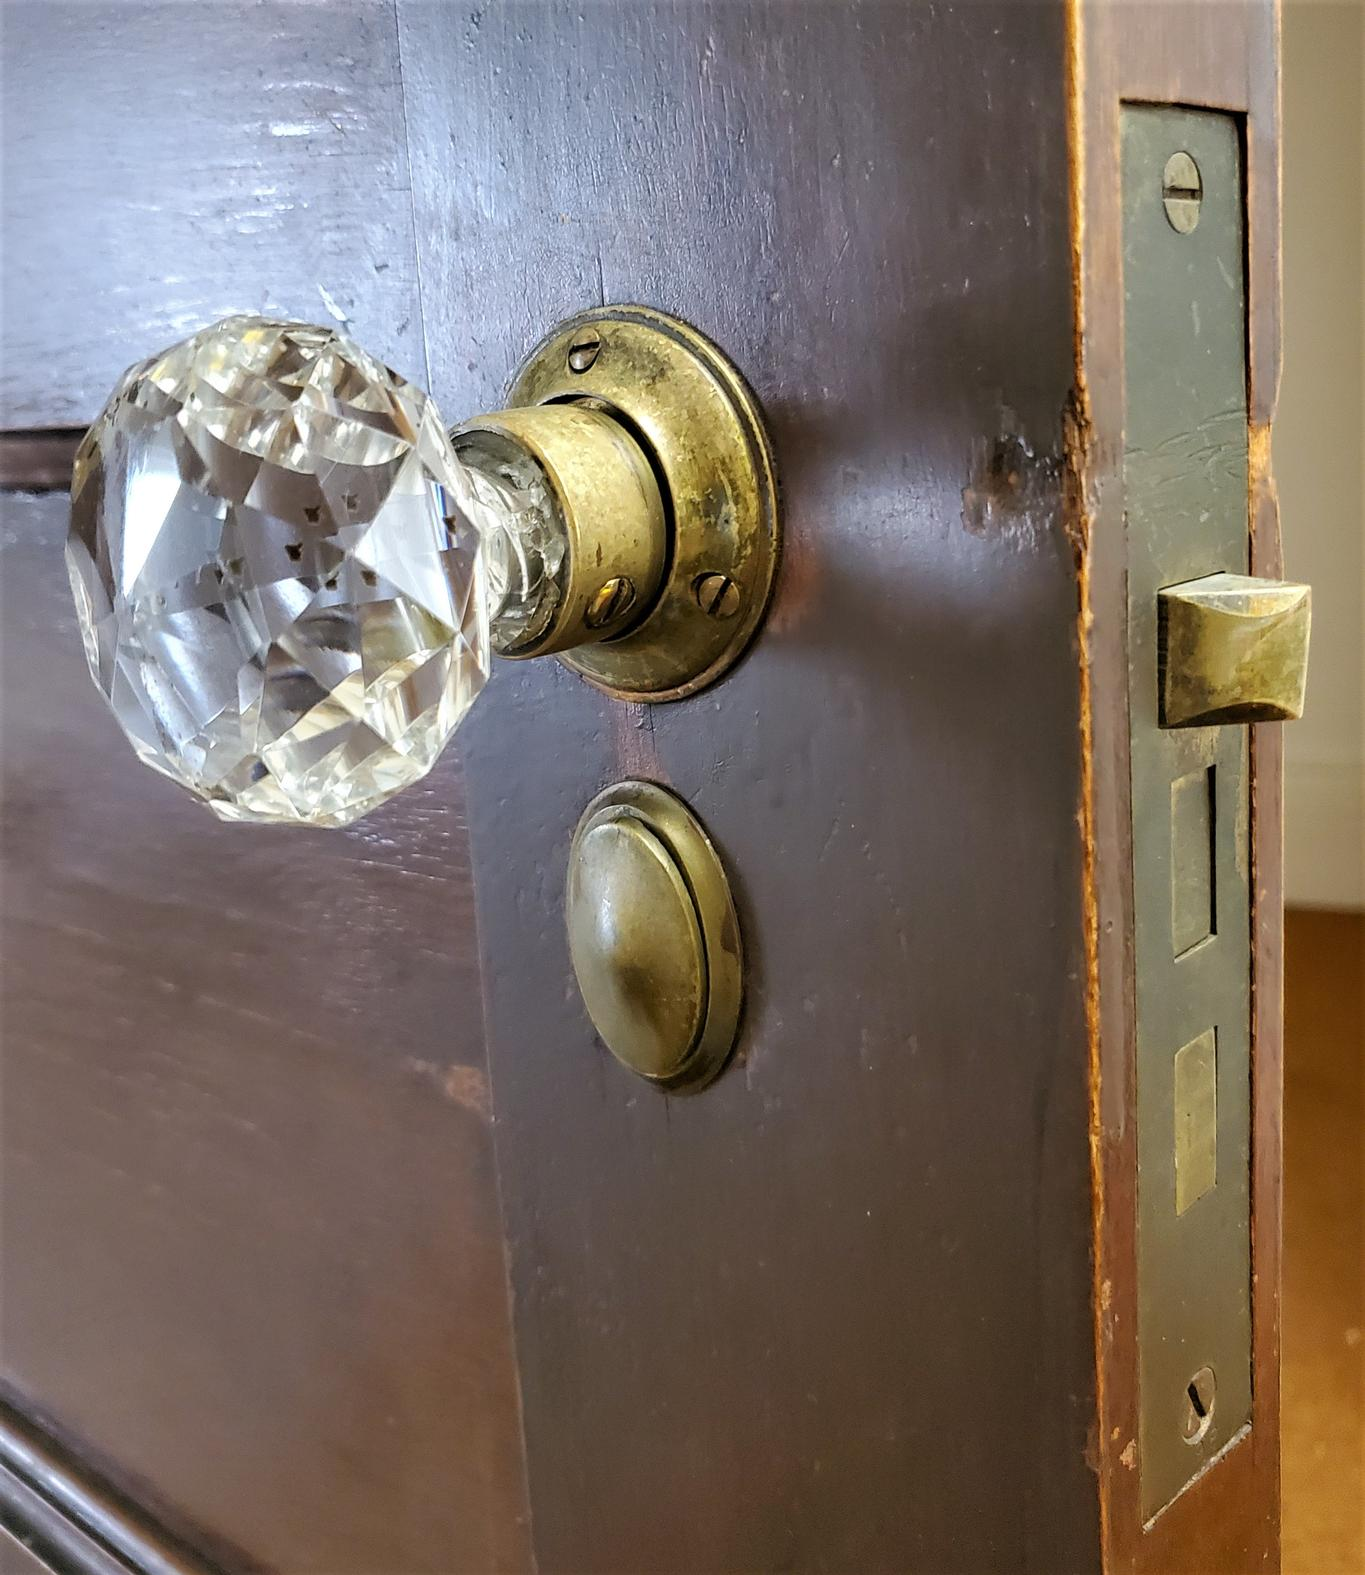 Russell & Erwin Glass Doorknob Set-s with thumblatch - keyhole cover